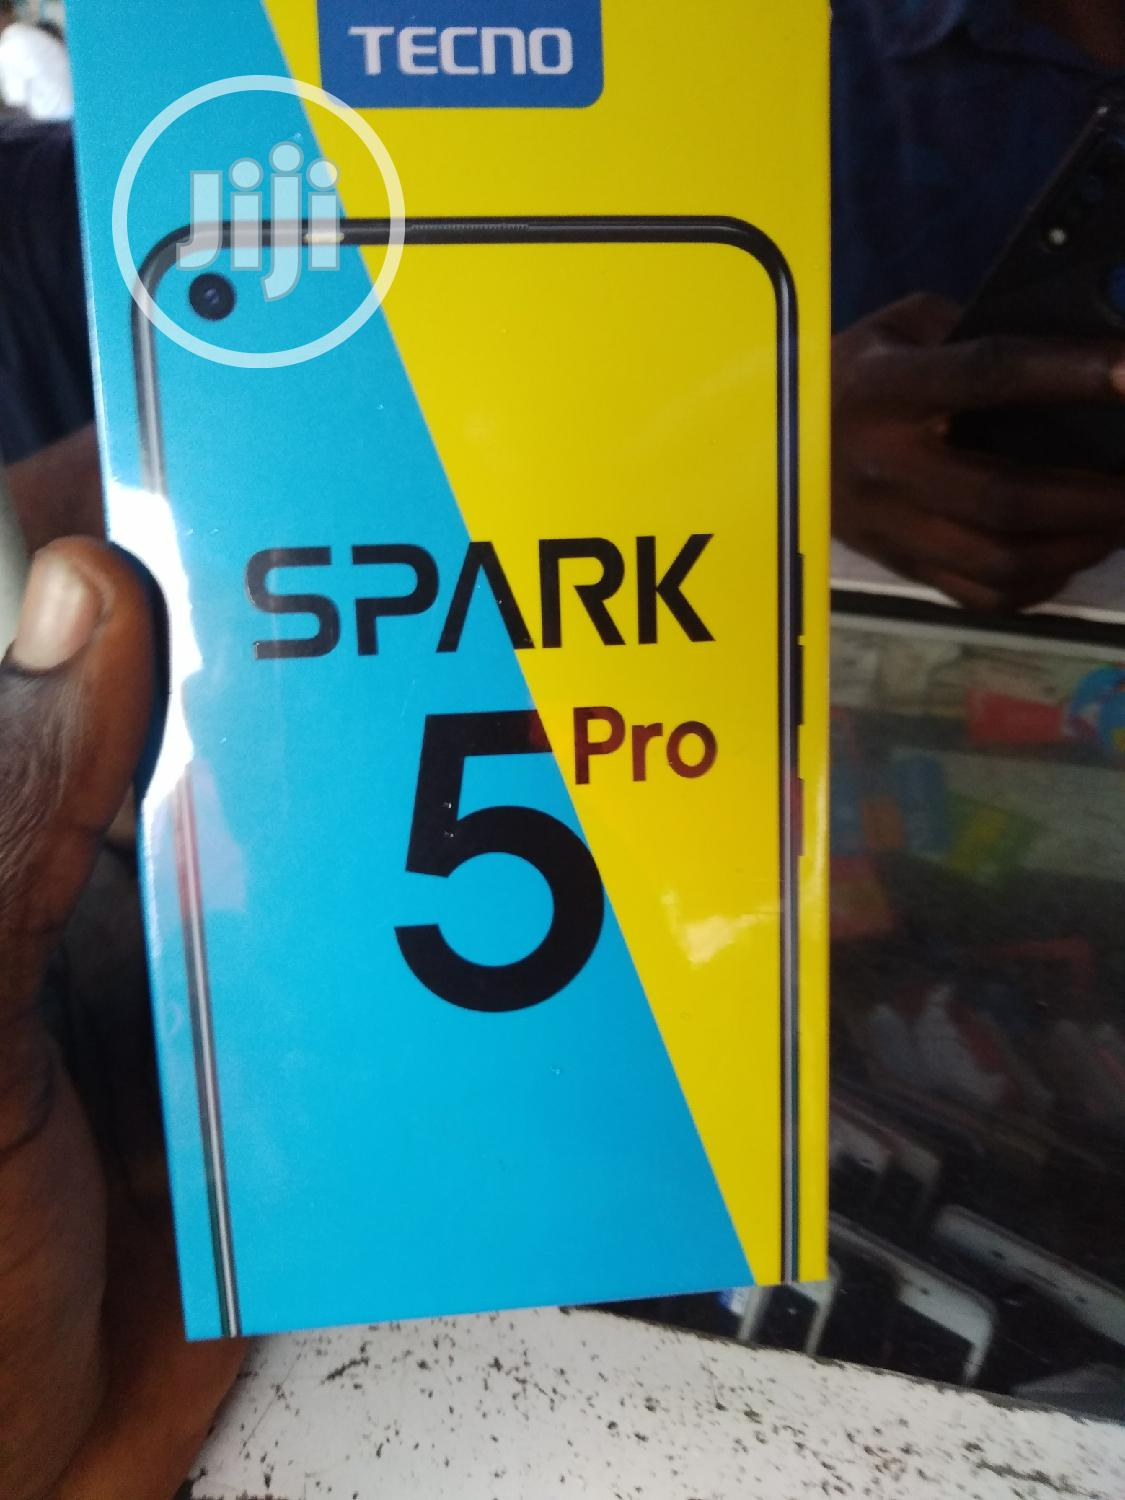 New Tecno Spark 5 Pro 64 GB Gray | Mobile Phones for sale in Ajah, Lagos State, Nigeria